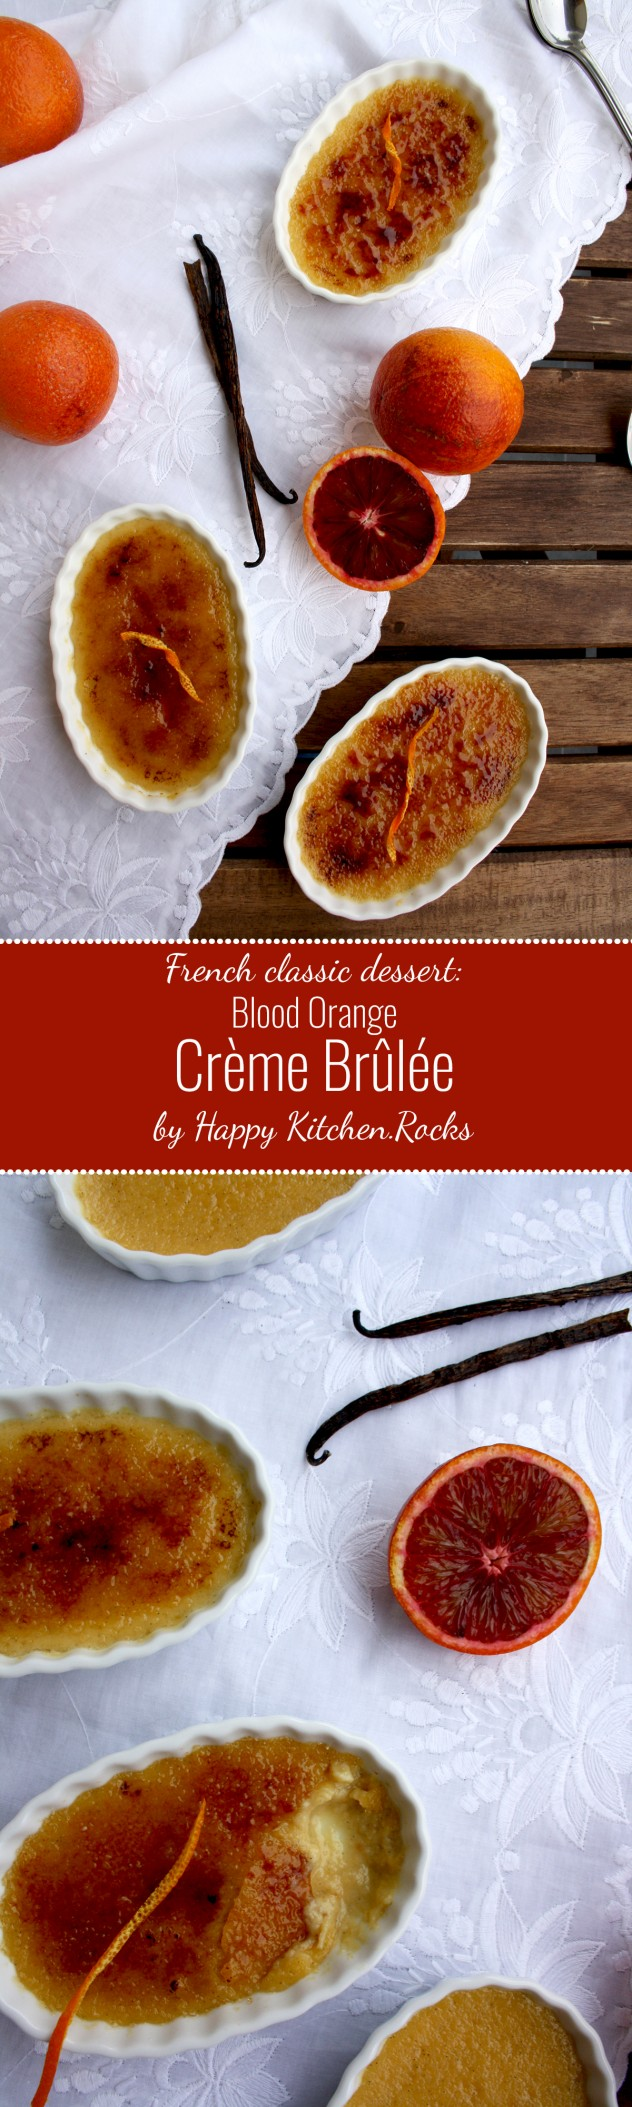 Blood Orange Crème Brûlée: Rich and creamy vanilla custard meets a brittle caramelized topping in this seductive and foolproof classic French dessert with a fresh hint of blood orange.